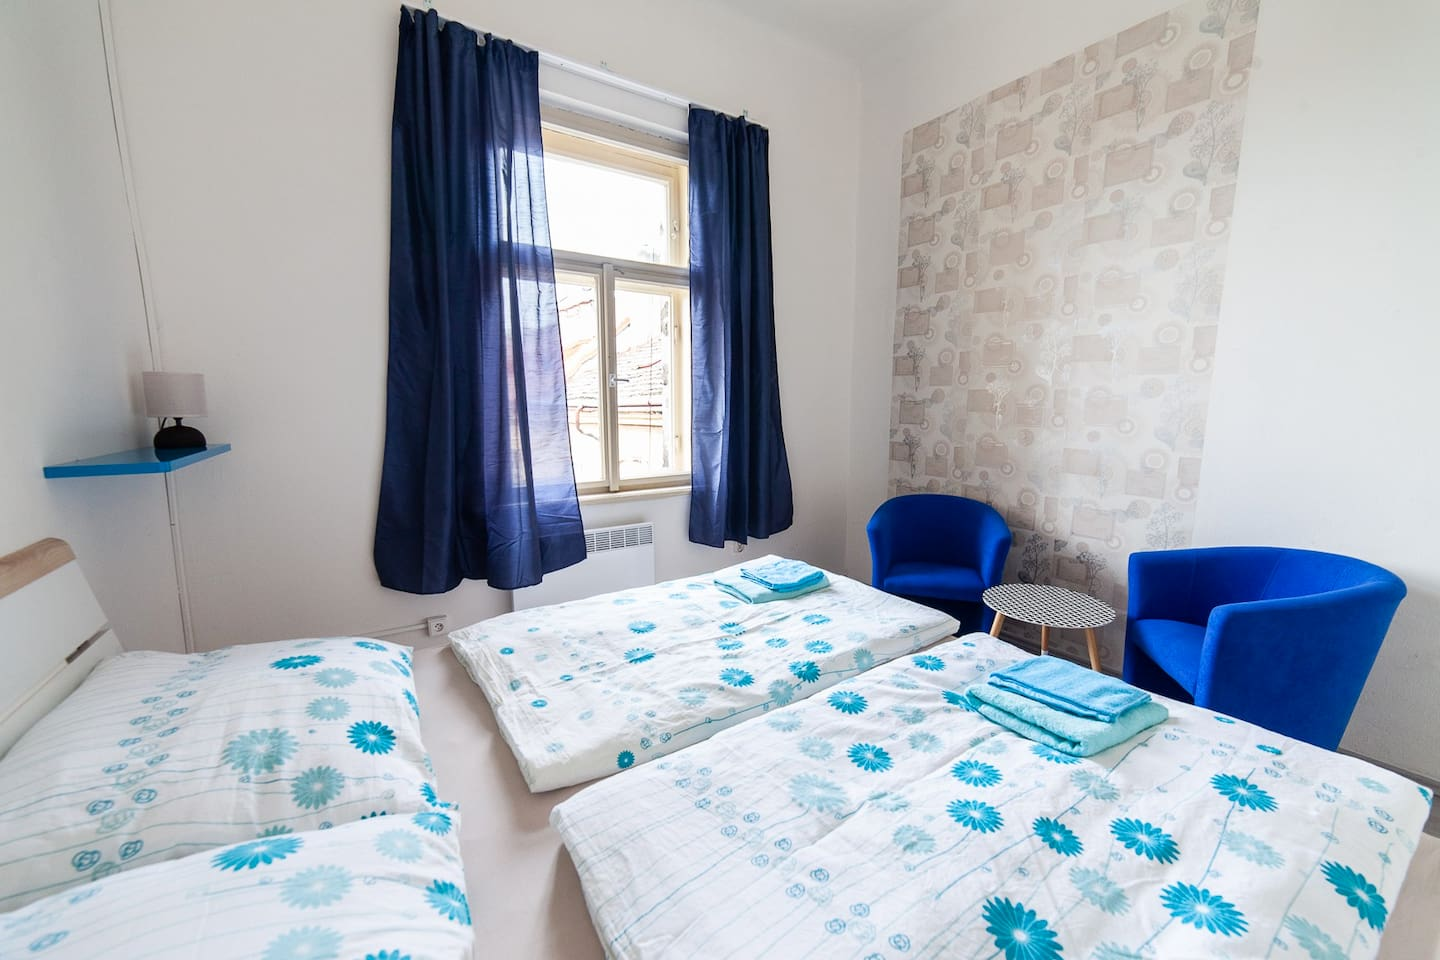 Bright and cosy room for two people with brand new furniture. The room has king size double bed, two comfy chairs with designers table. You will just love the location and the room :)